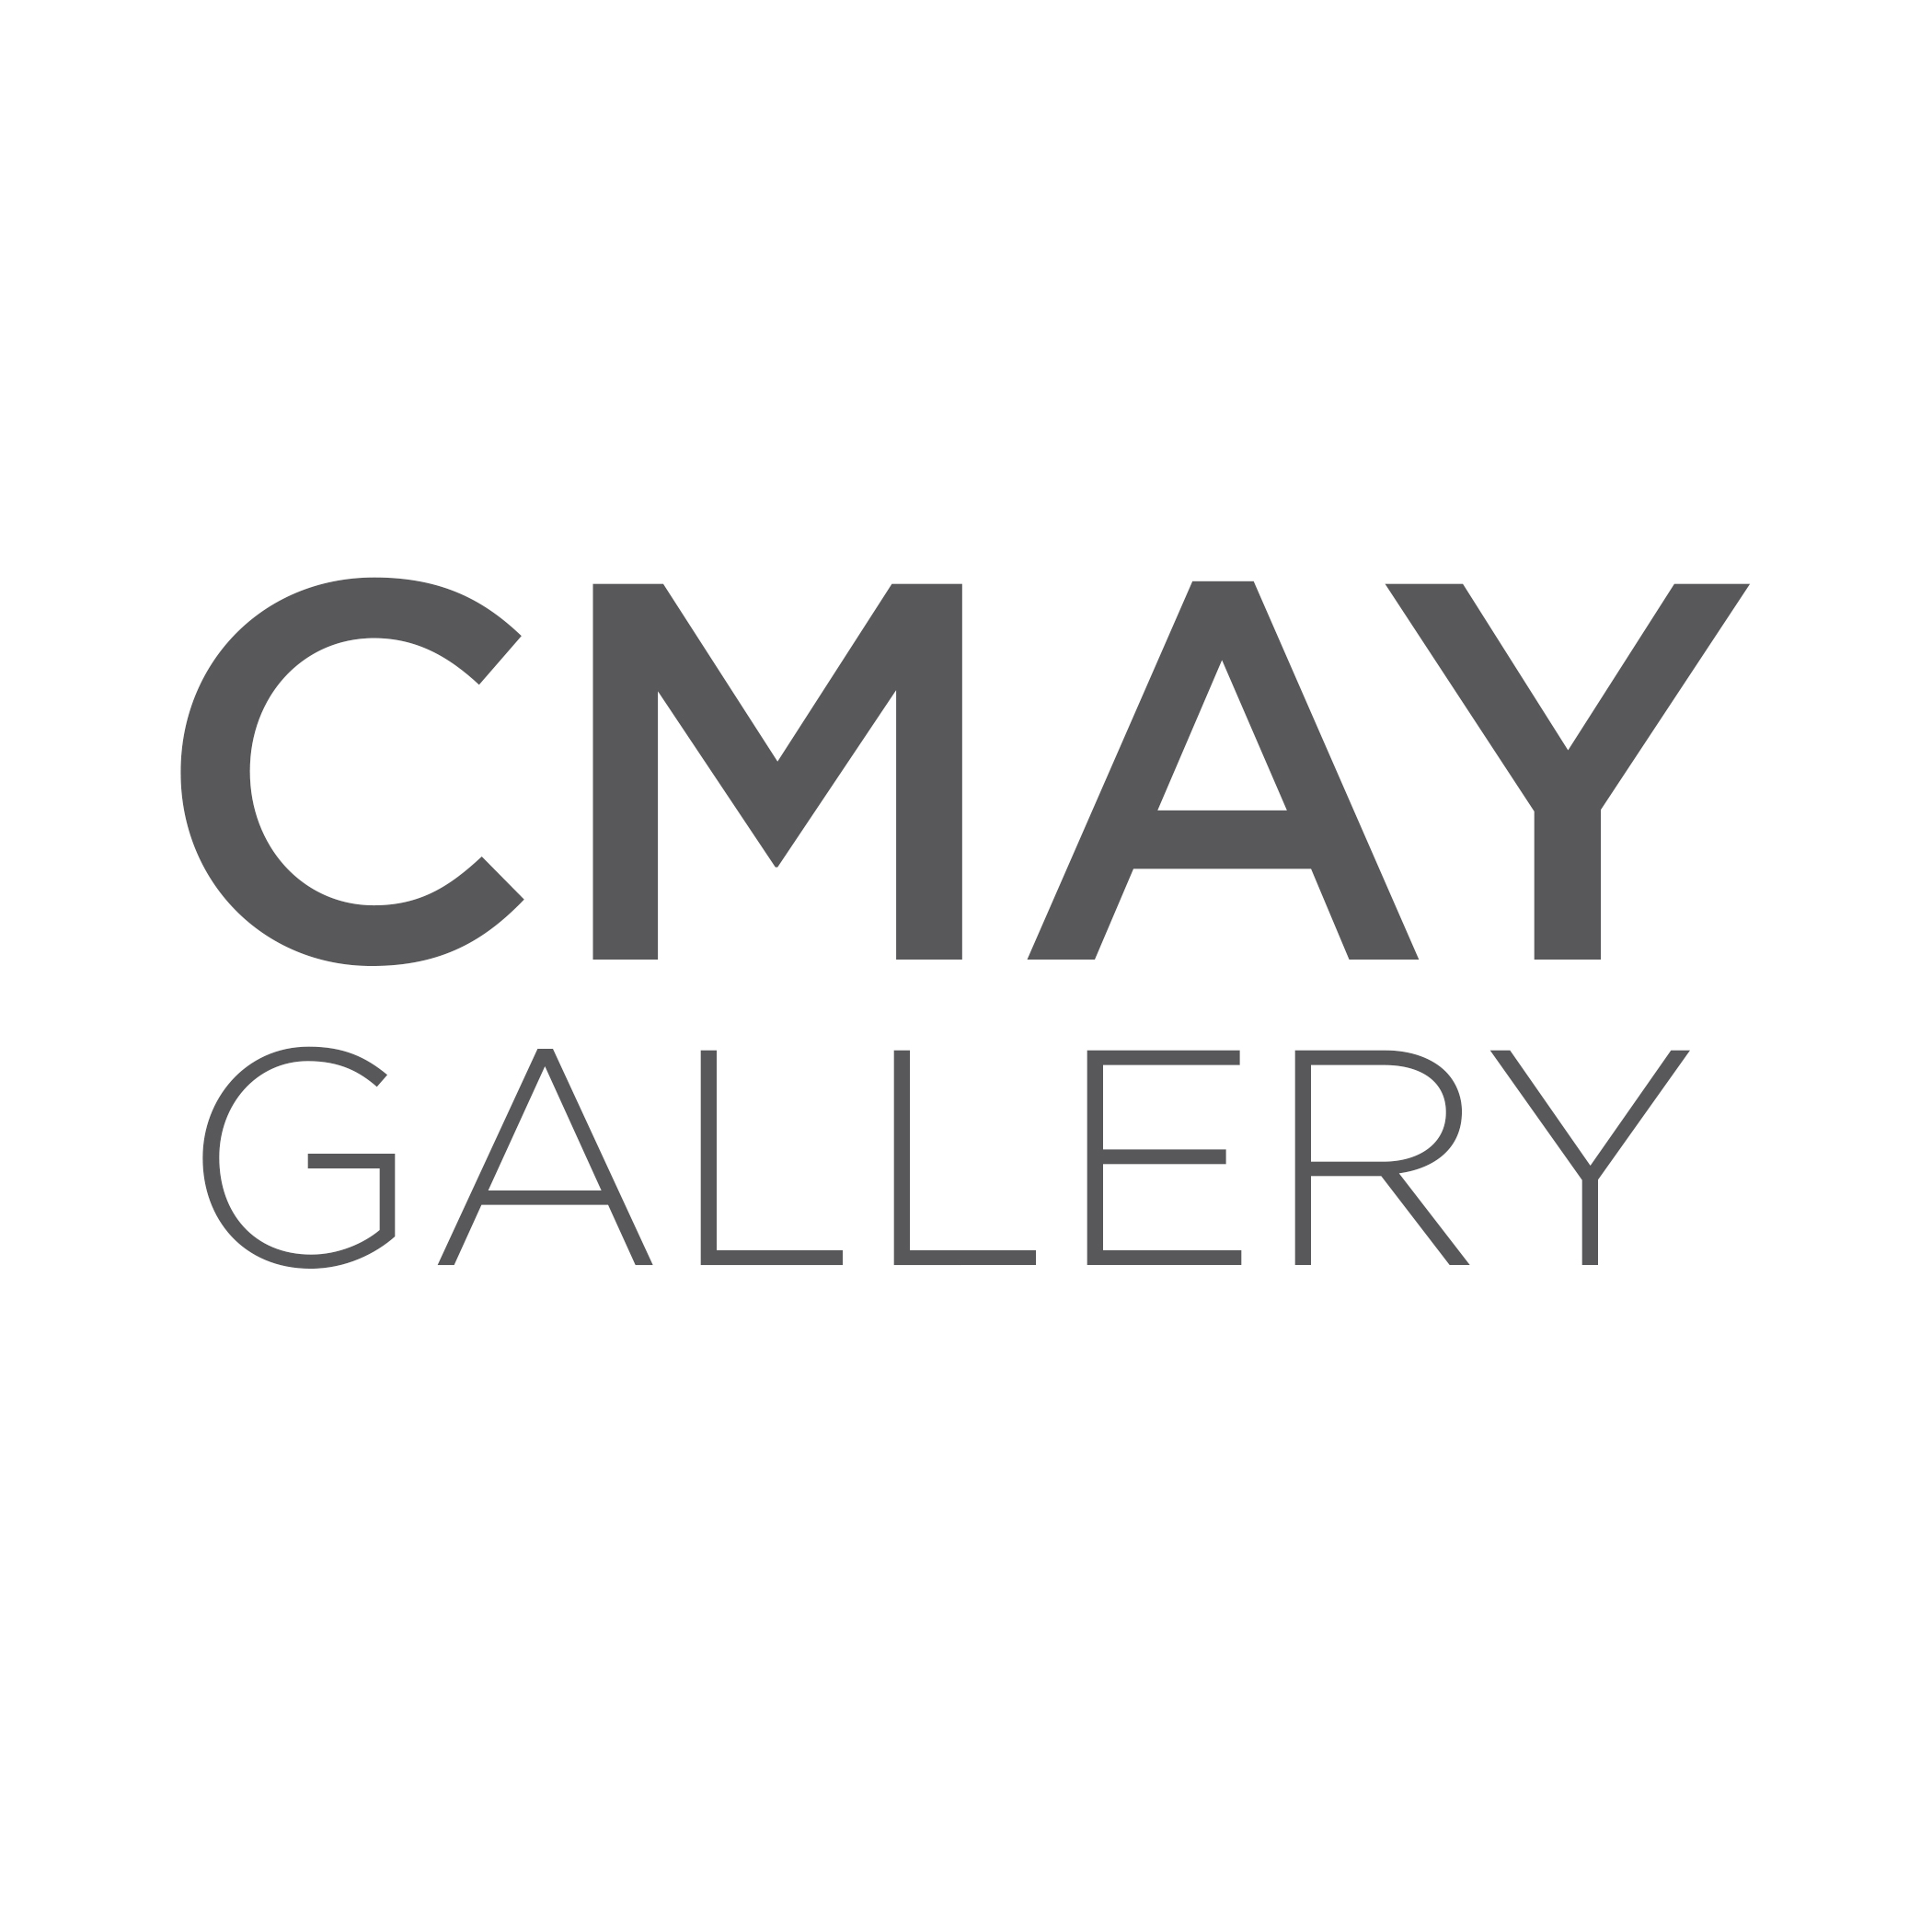 CMay Gallery